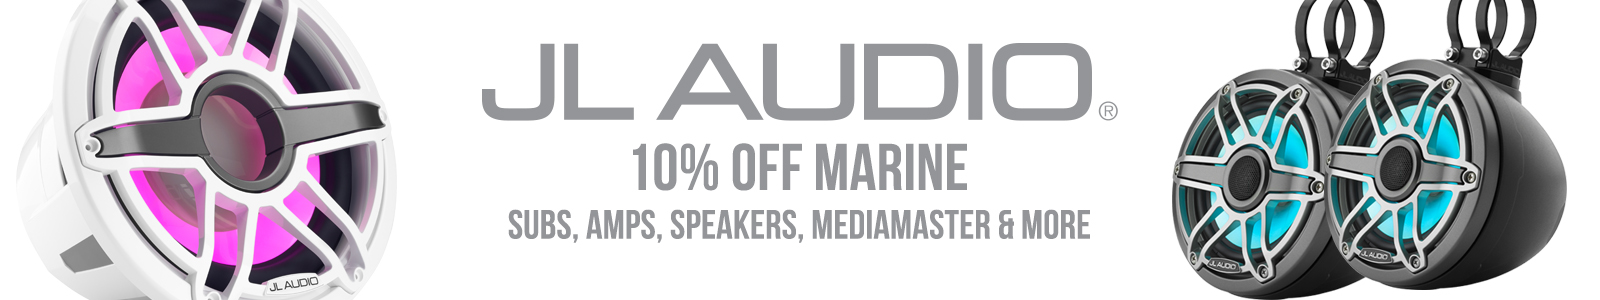 JL Audio Marine Sale - 10% Off Subs, Amps, Speakers and More!